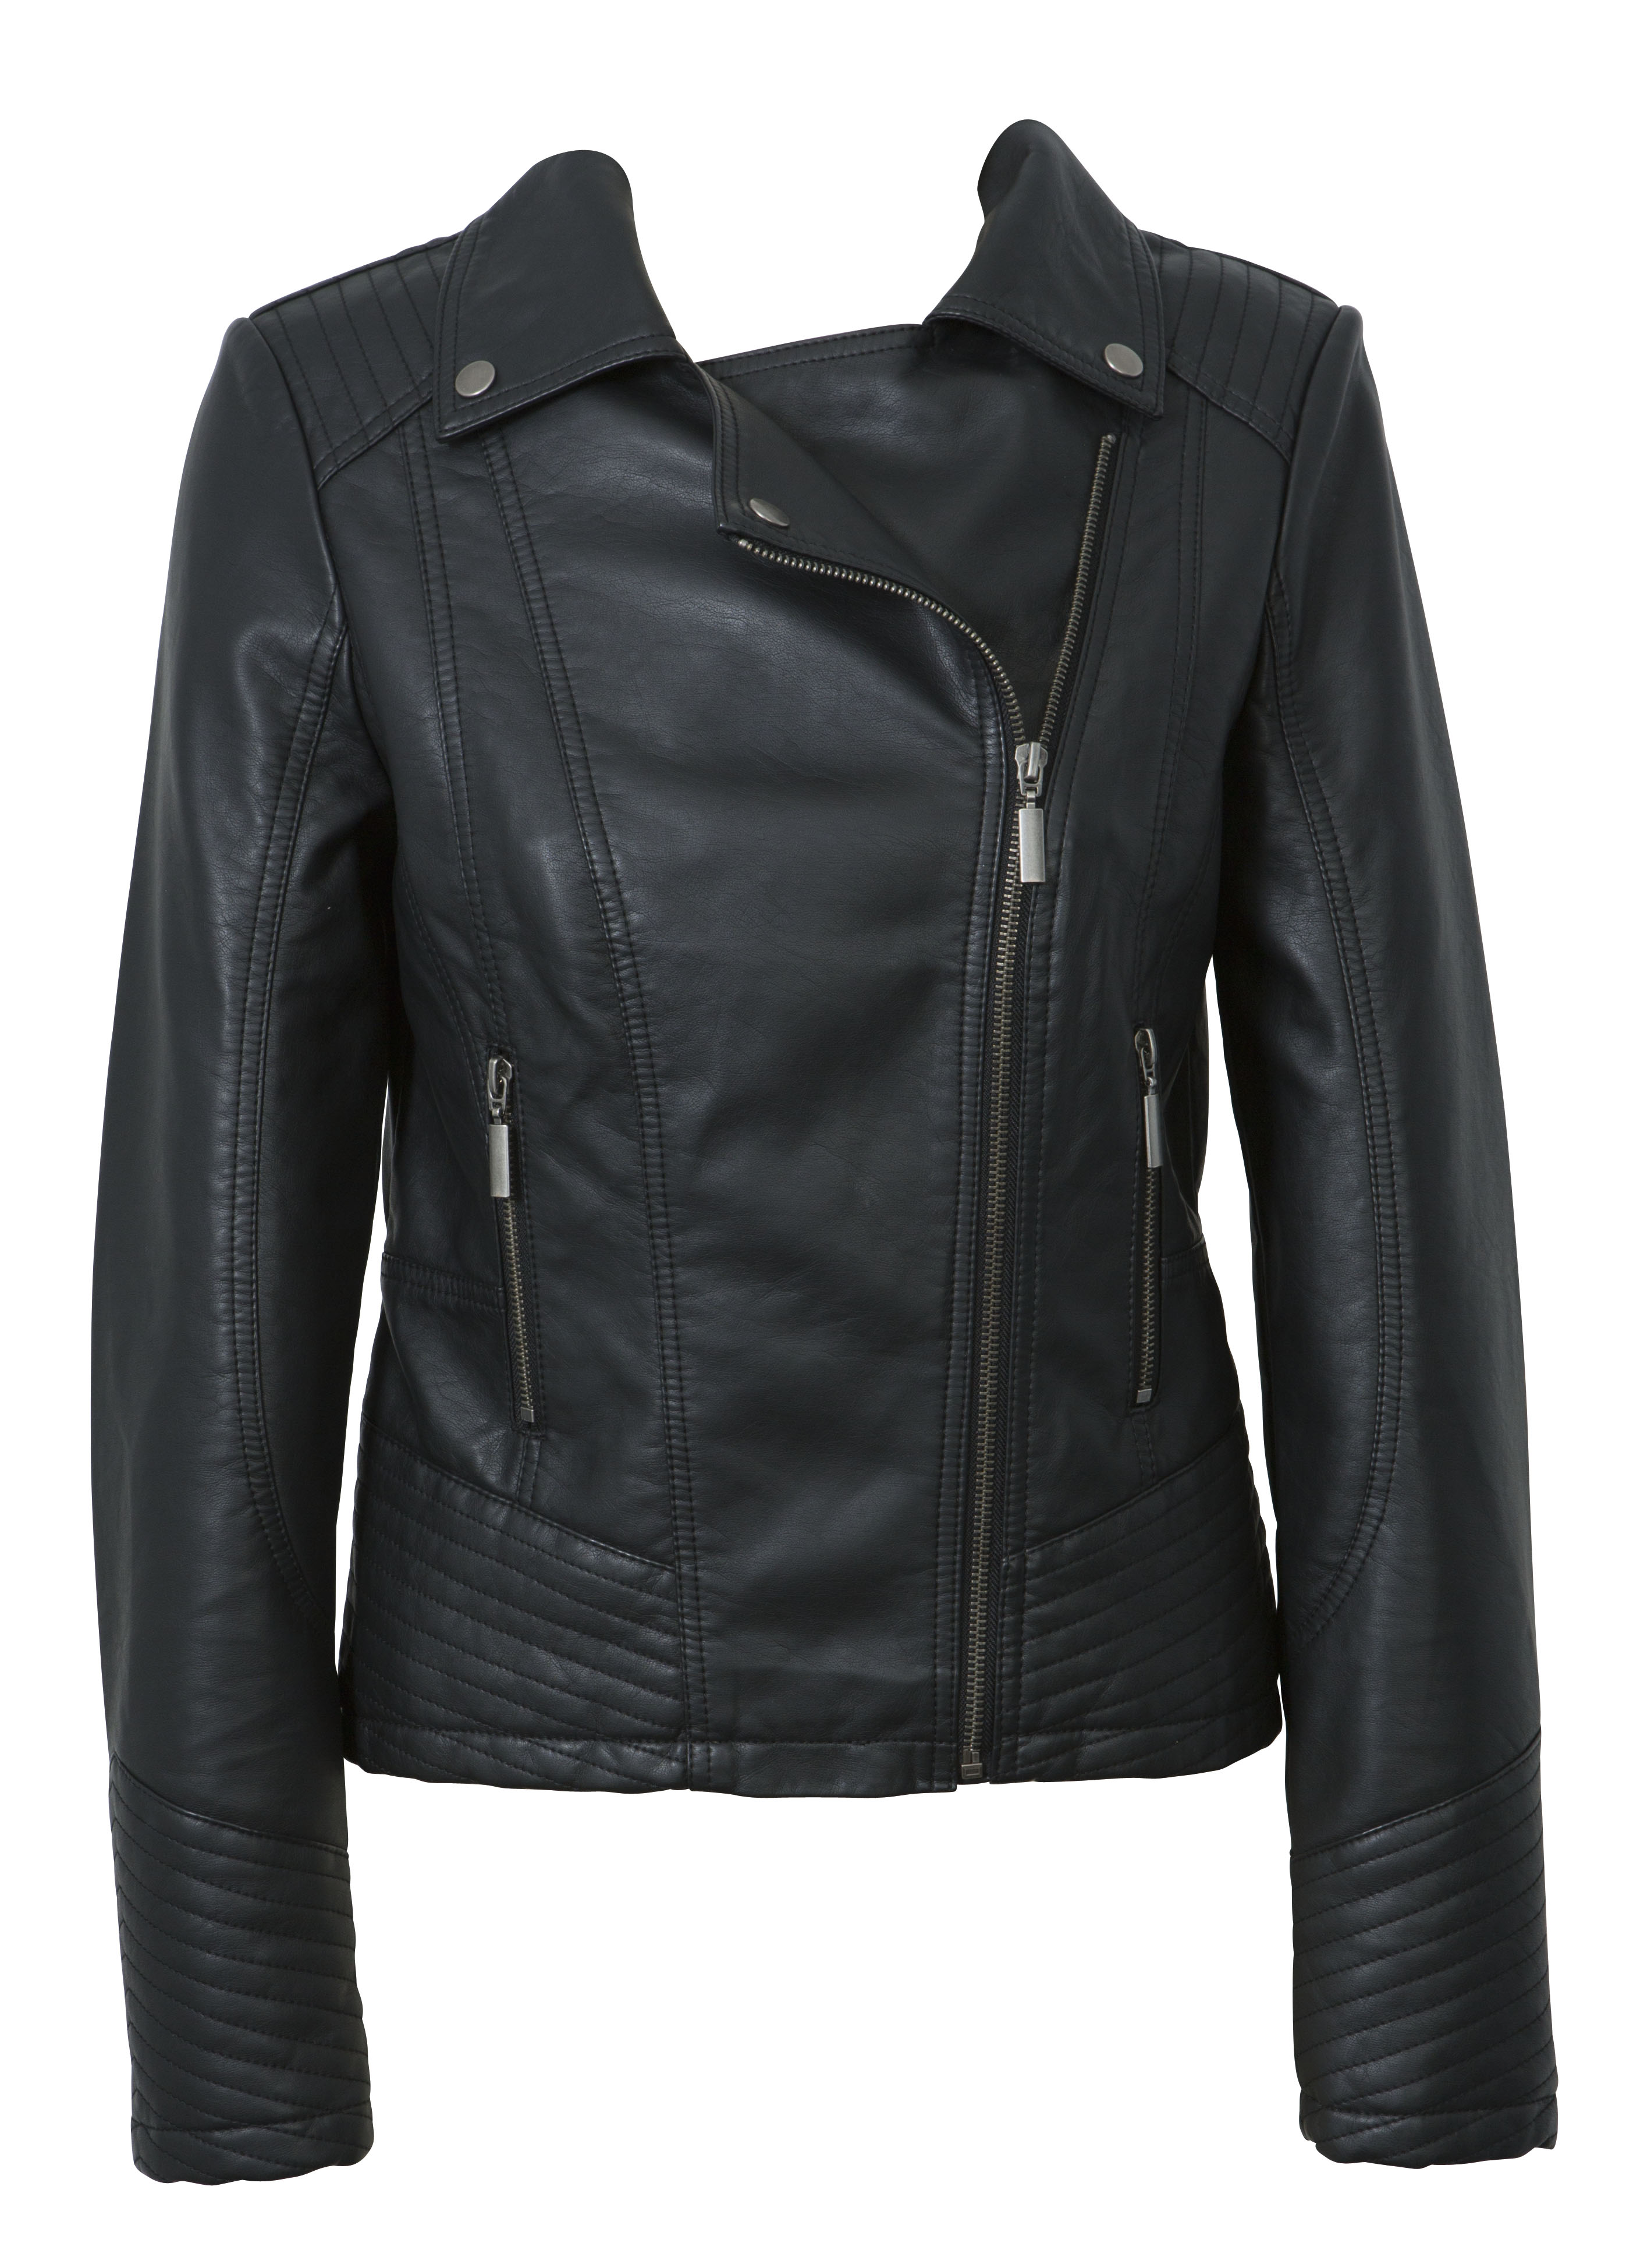 Whistle Biker Jacket, $129.99, Inst March